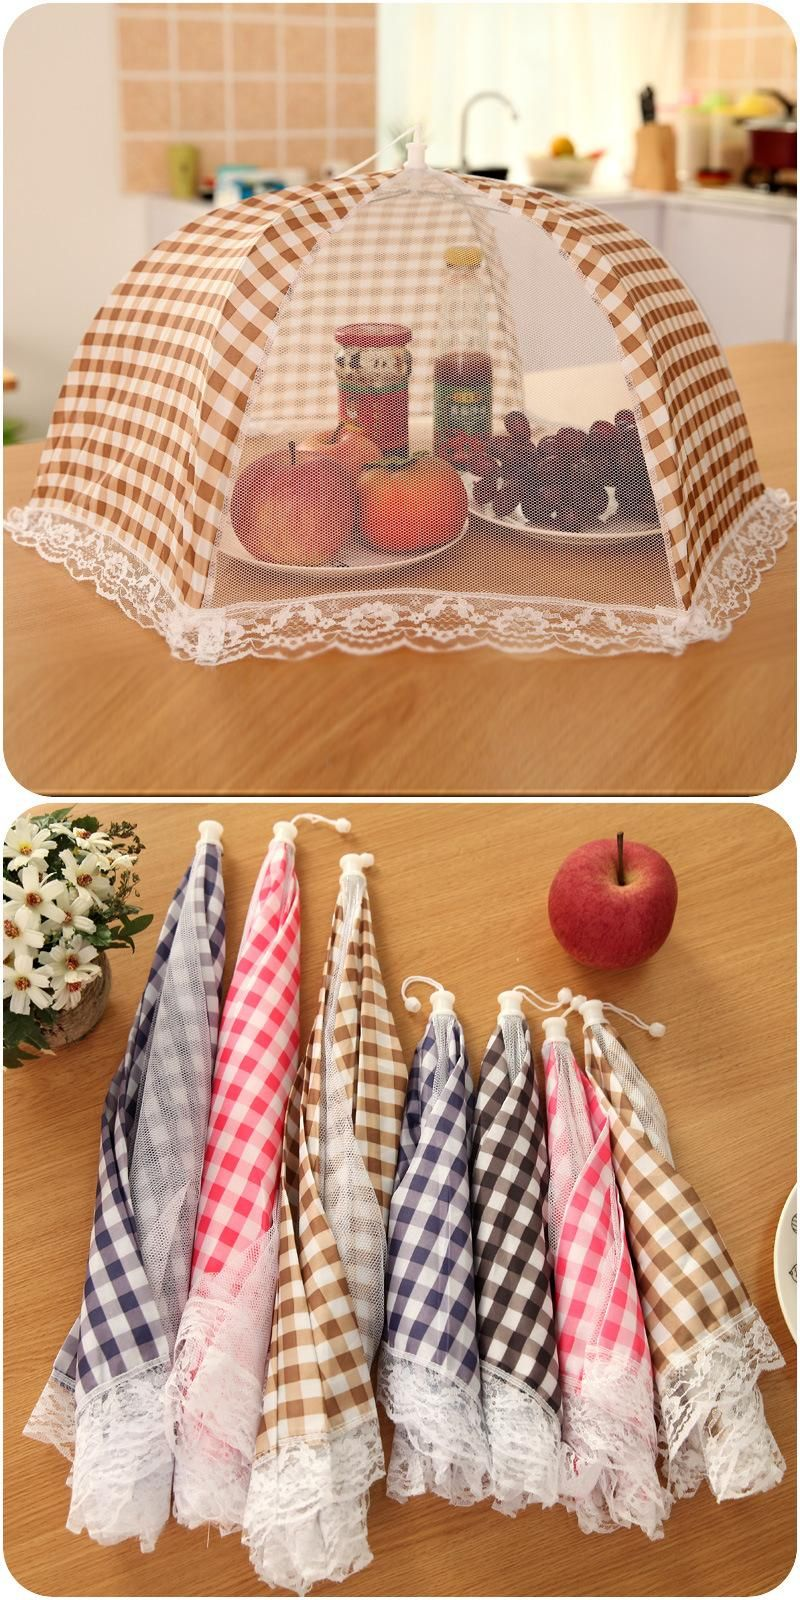 [Visit to Buy] High Quality Large Umbrella Collapsible Anti Fly Mosquito Lace Mesh Kitchen Outdoor Picnic Meal Fruit Food Covers Random Color #Advertisement #largeumbrella